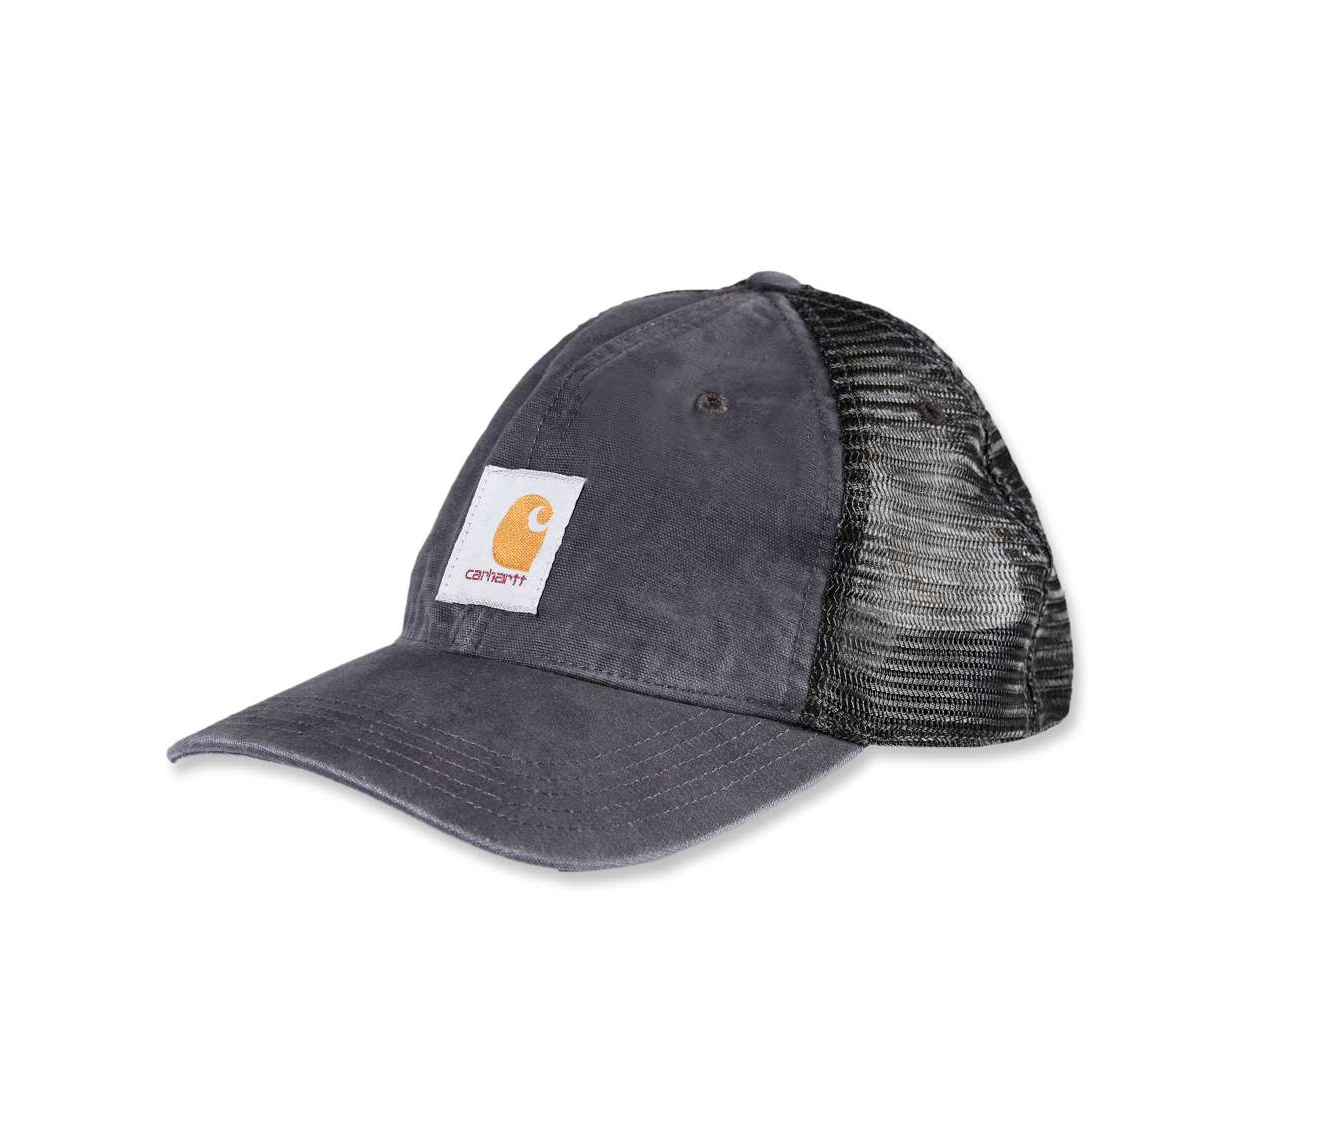 Carhartt Buffalo CH100286 adjustable black cap with breathable mesh rear.